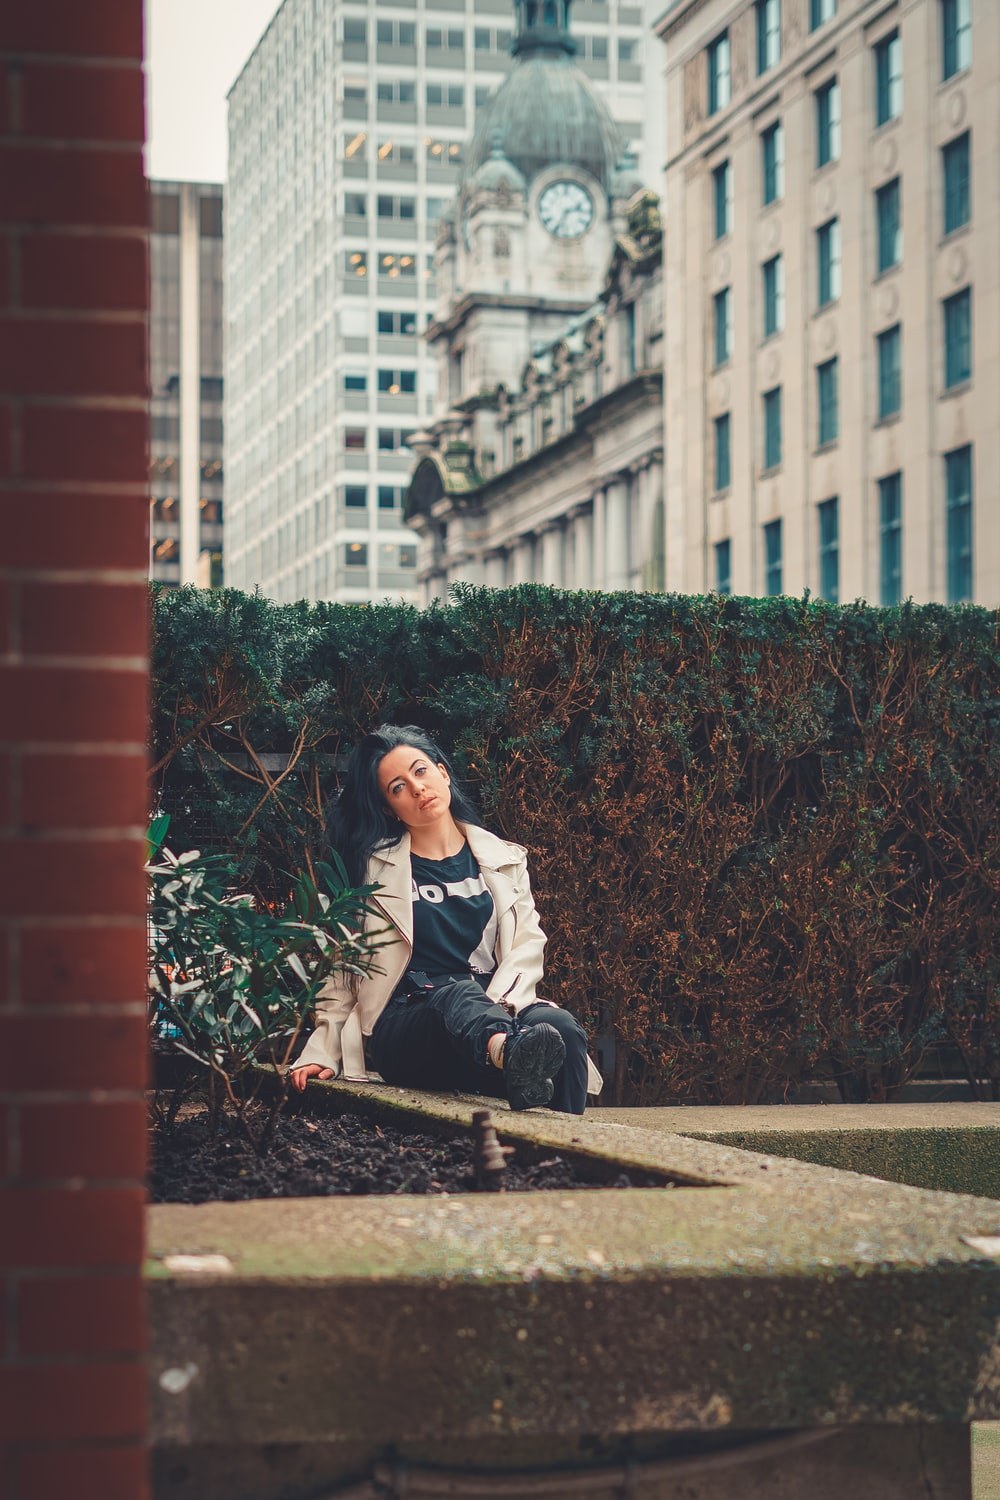 woman in white long sleeve shirt sitting on brown concrete bench during daytime